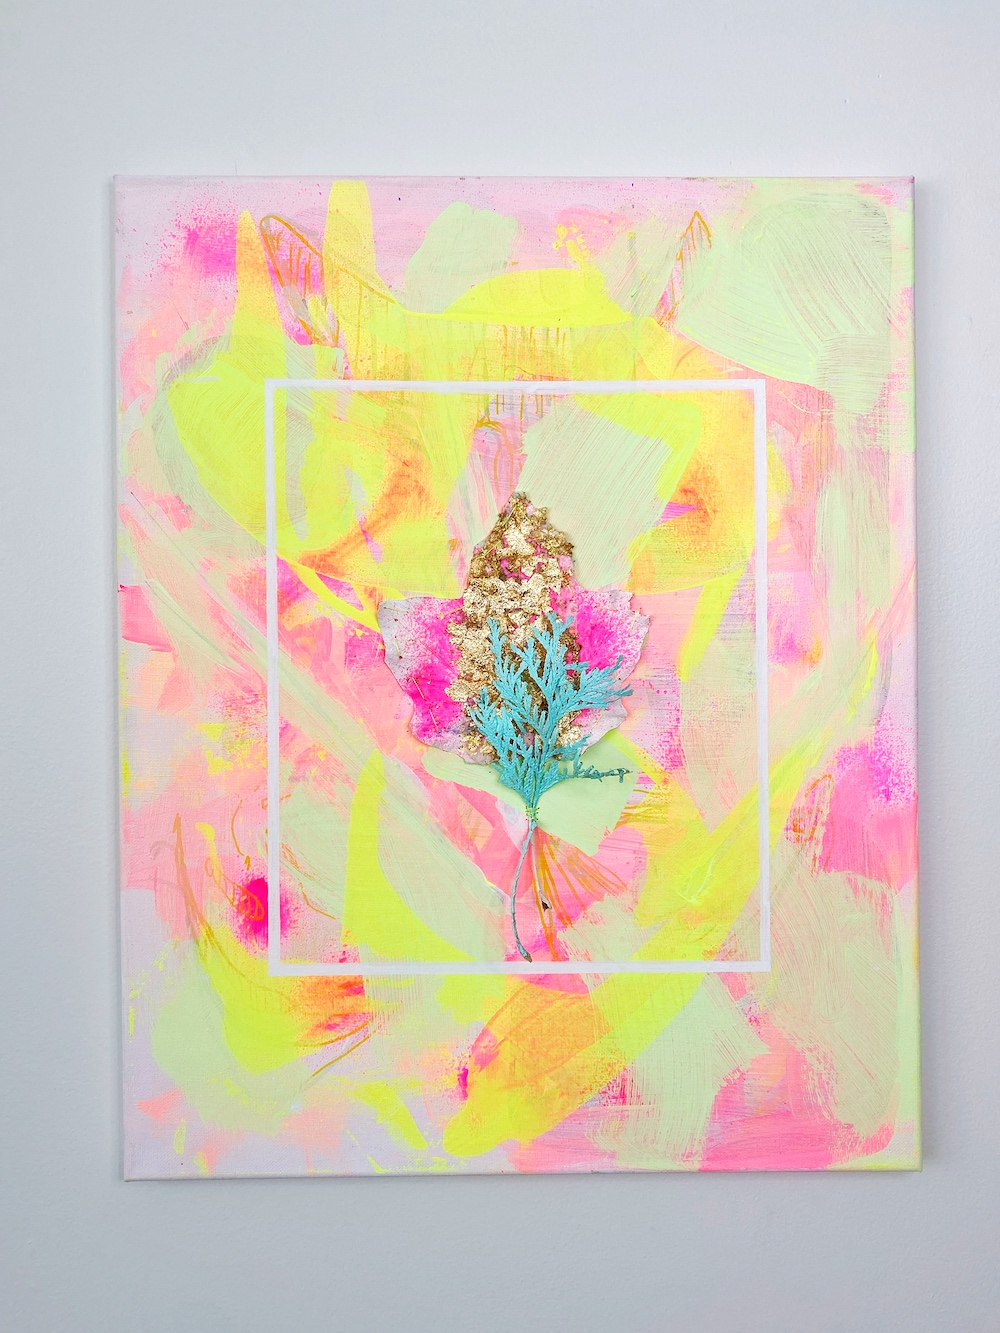 montie, Shock Me! Shock Me! Shock Me!, acrylic paint on canvas and leaves with gold foil